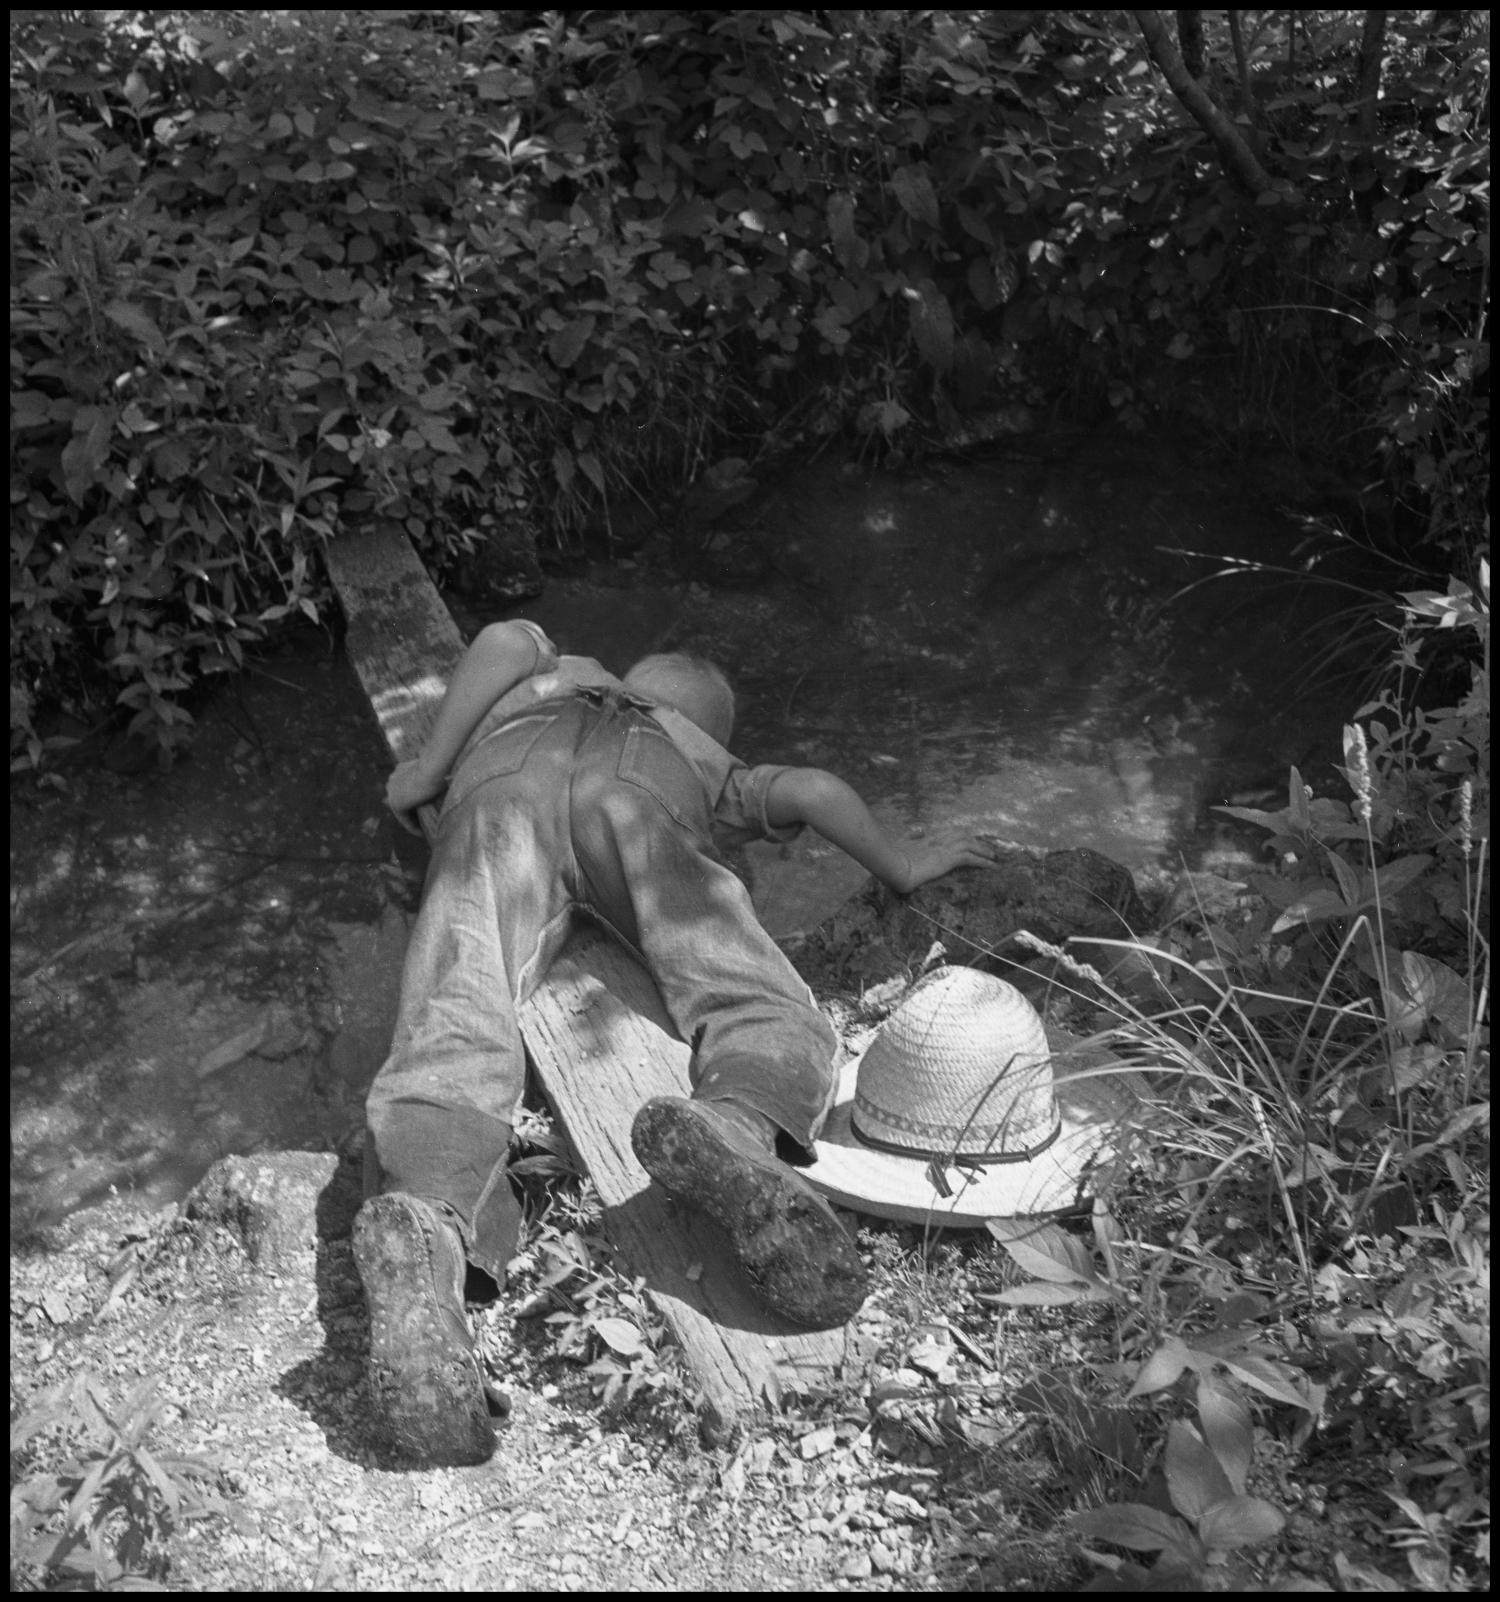 [Drinking Out of the Spring], Photograph of Roy McCrary getting a drink out of the spring at Vertical Acres. McCrary rests his hat on the ground as he leans across a plank of wood to reach the water.,